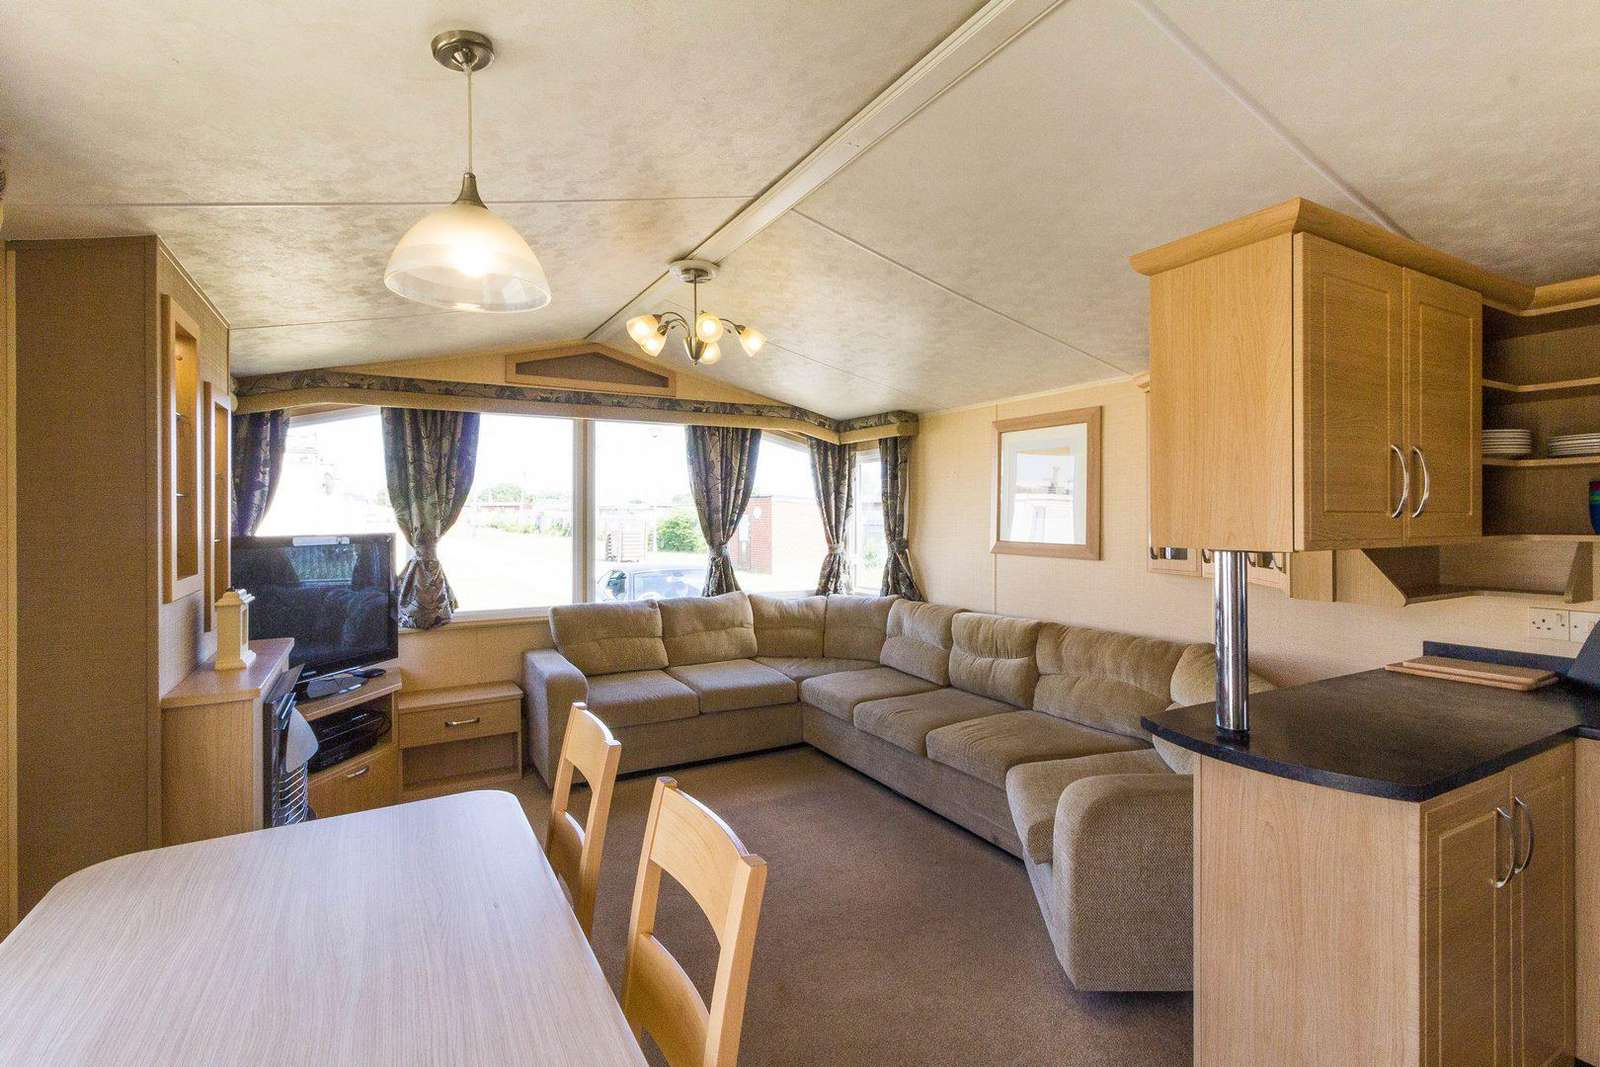 Very spacious and open plan ideal for families!